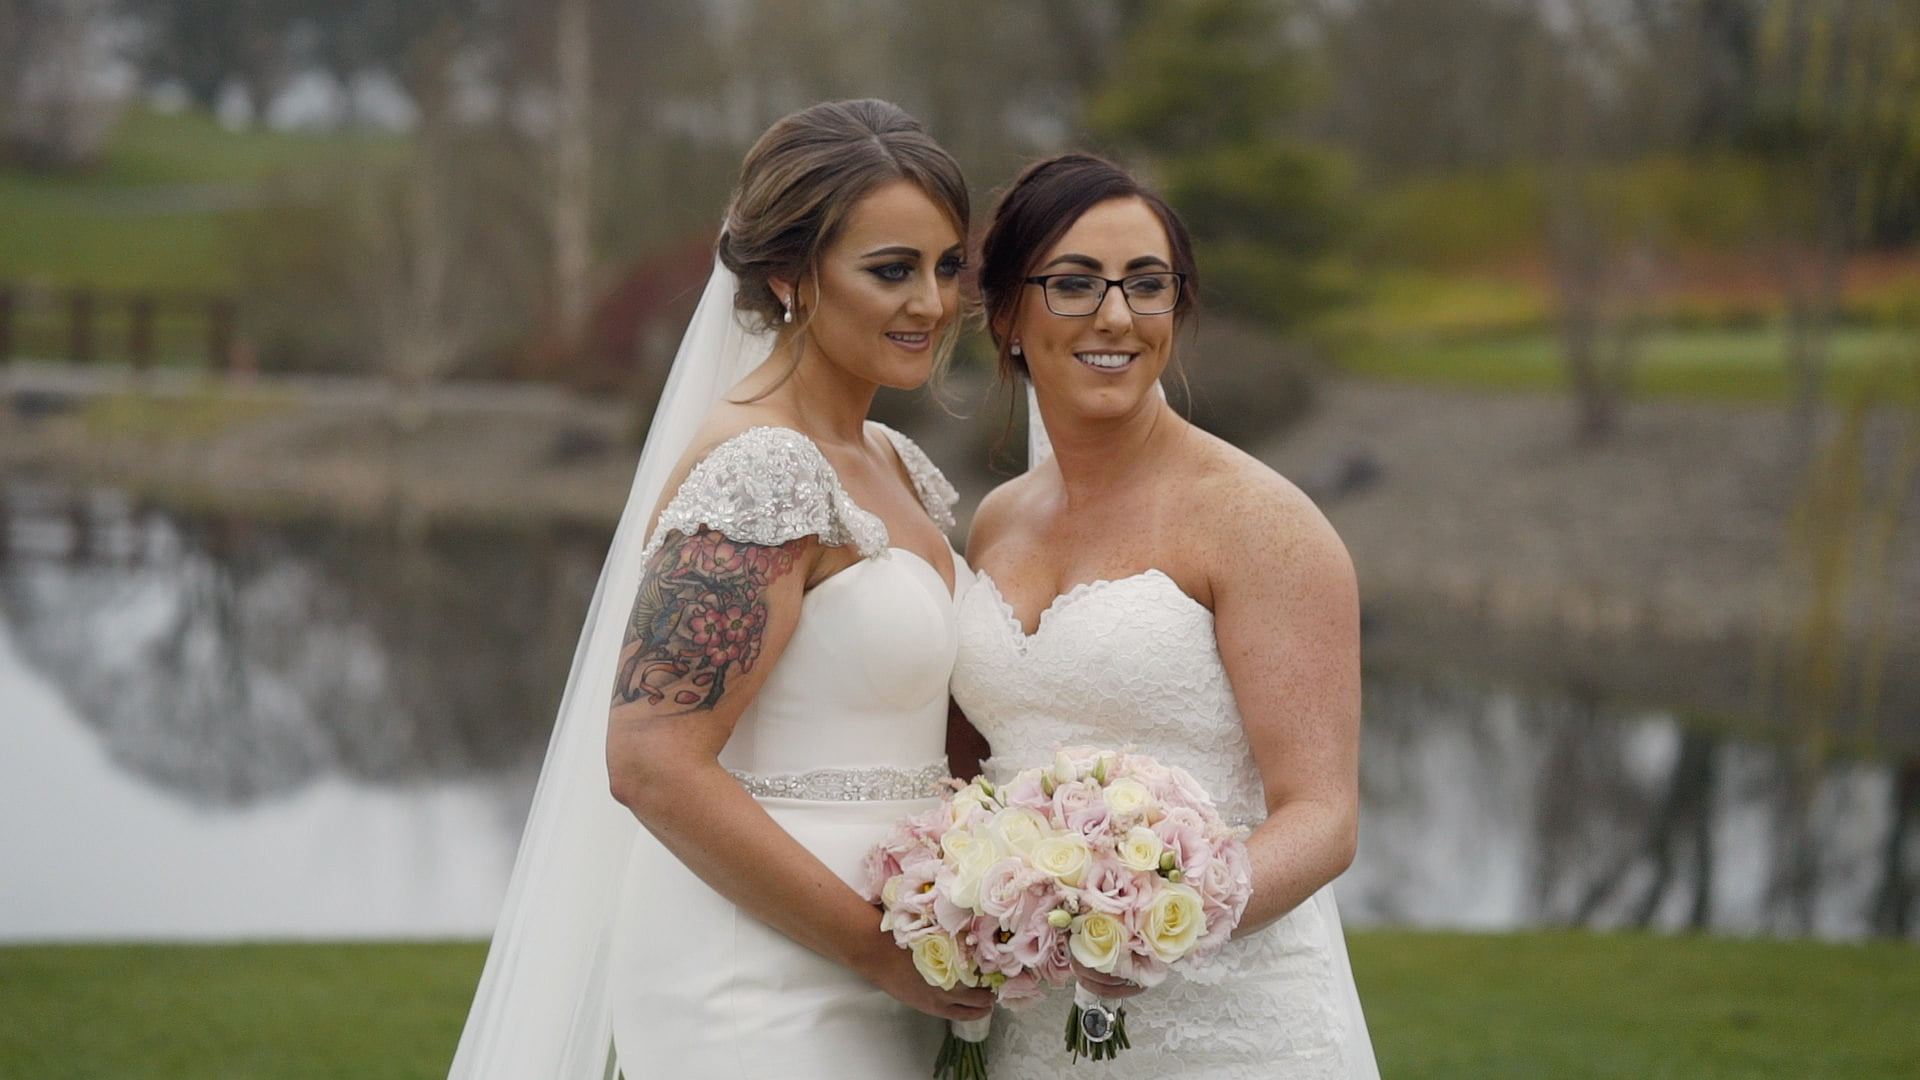 Wedding Video Knightsbrook Hotel – Victoria and Sarah